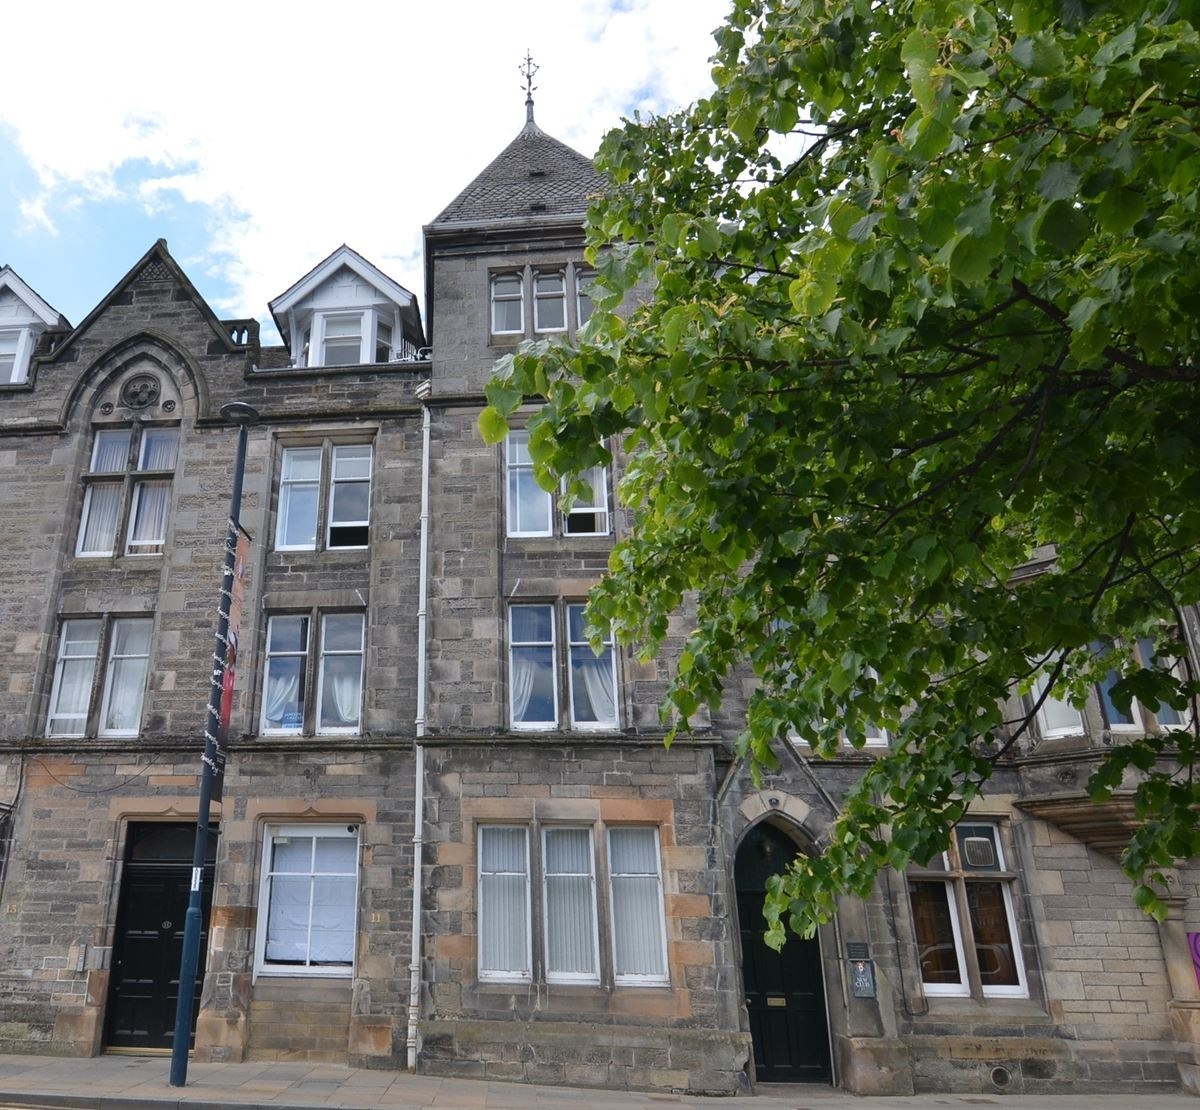 2 Bed First Floor Flat In Perth Offers Over £155,000